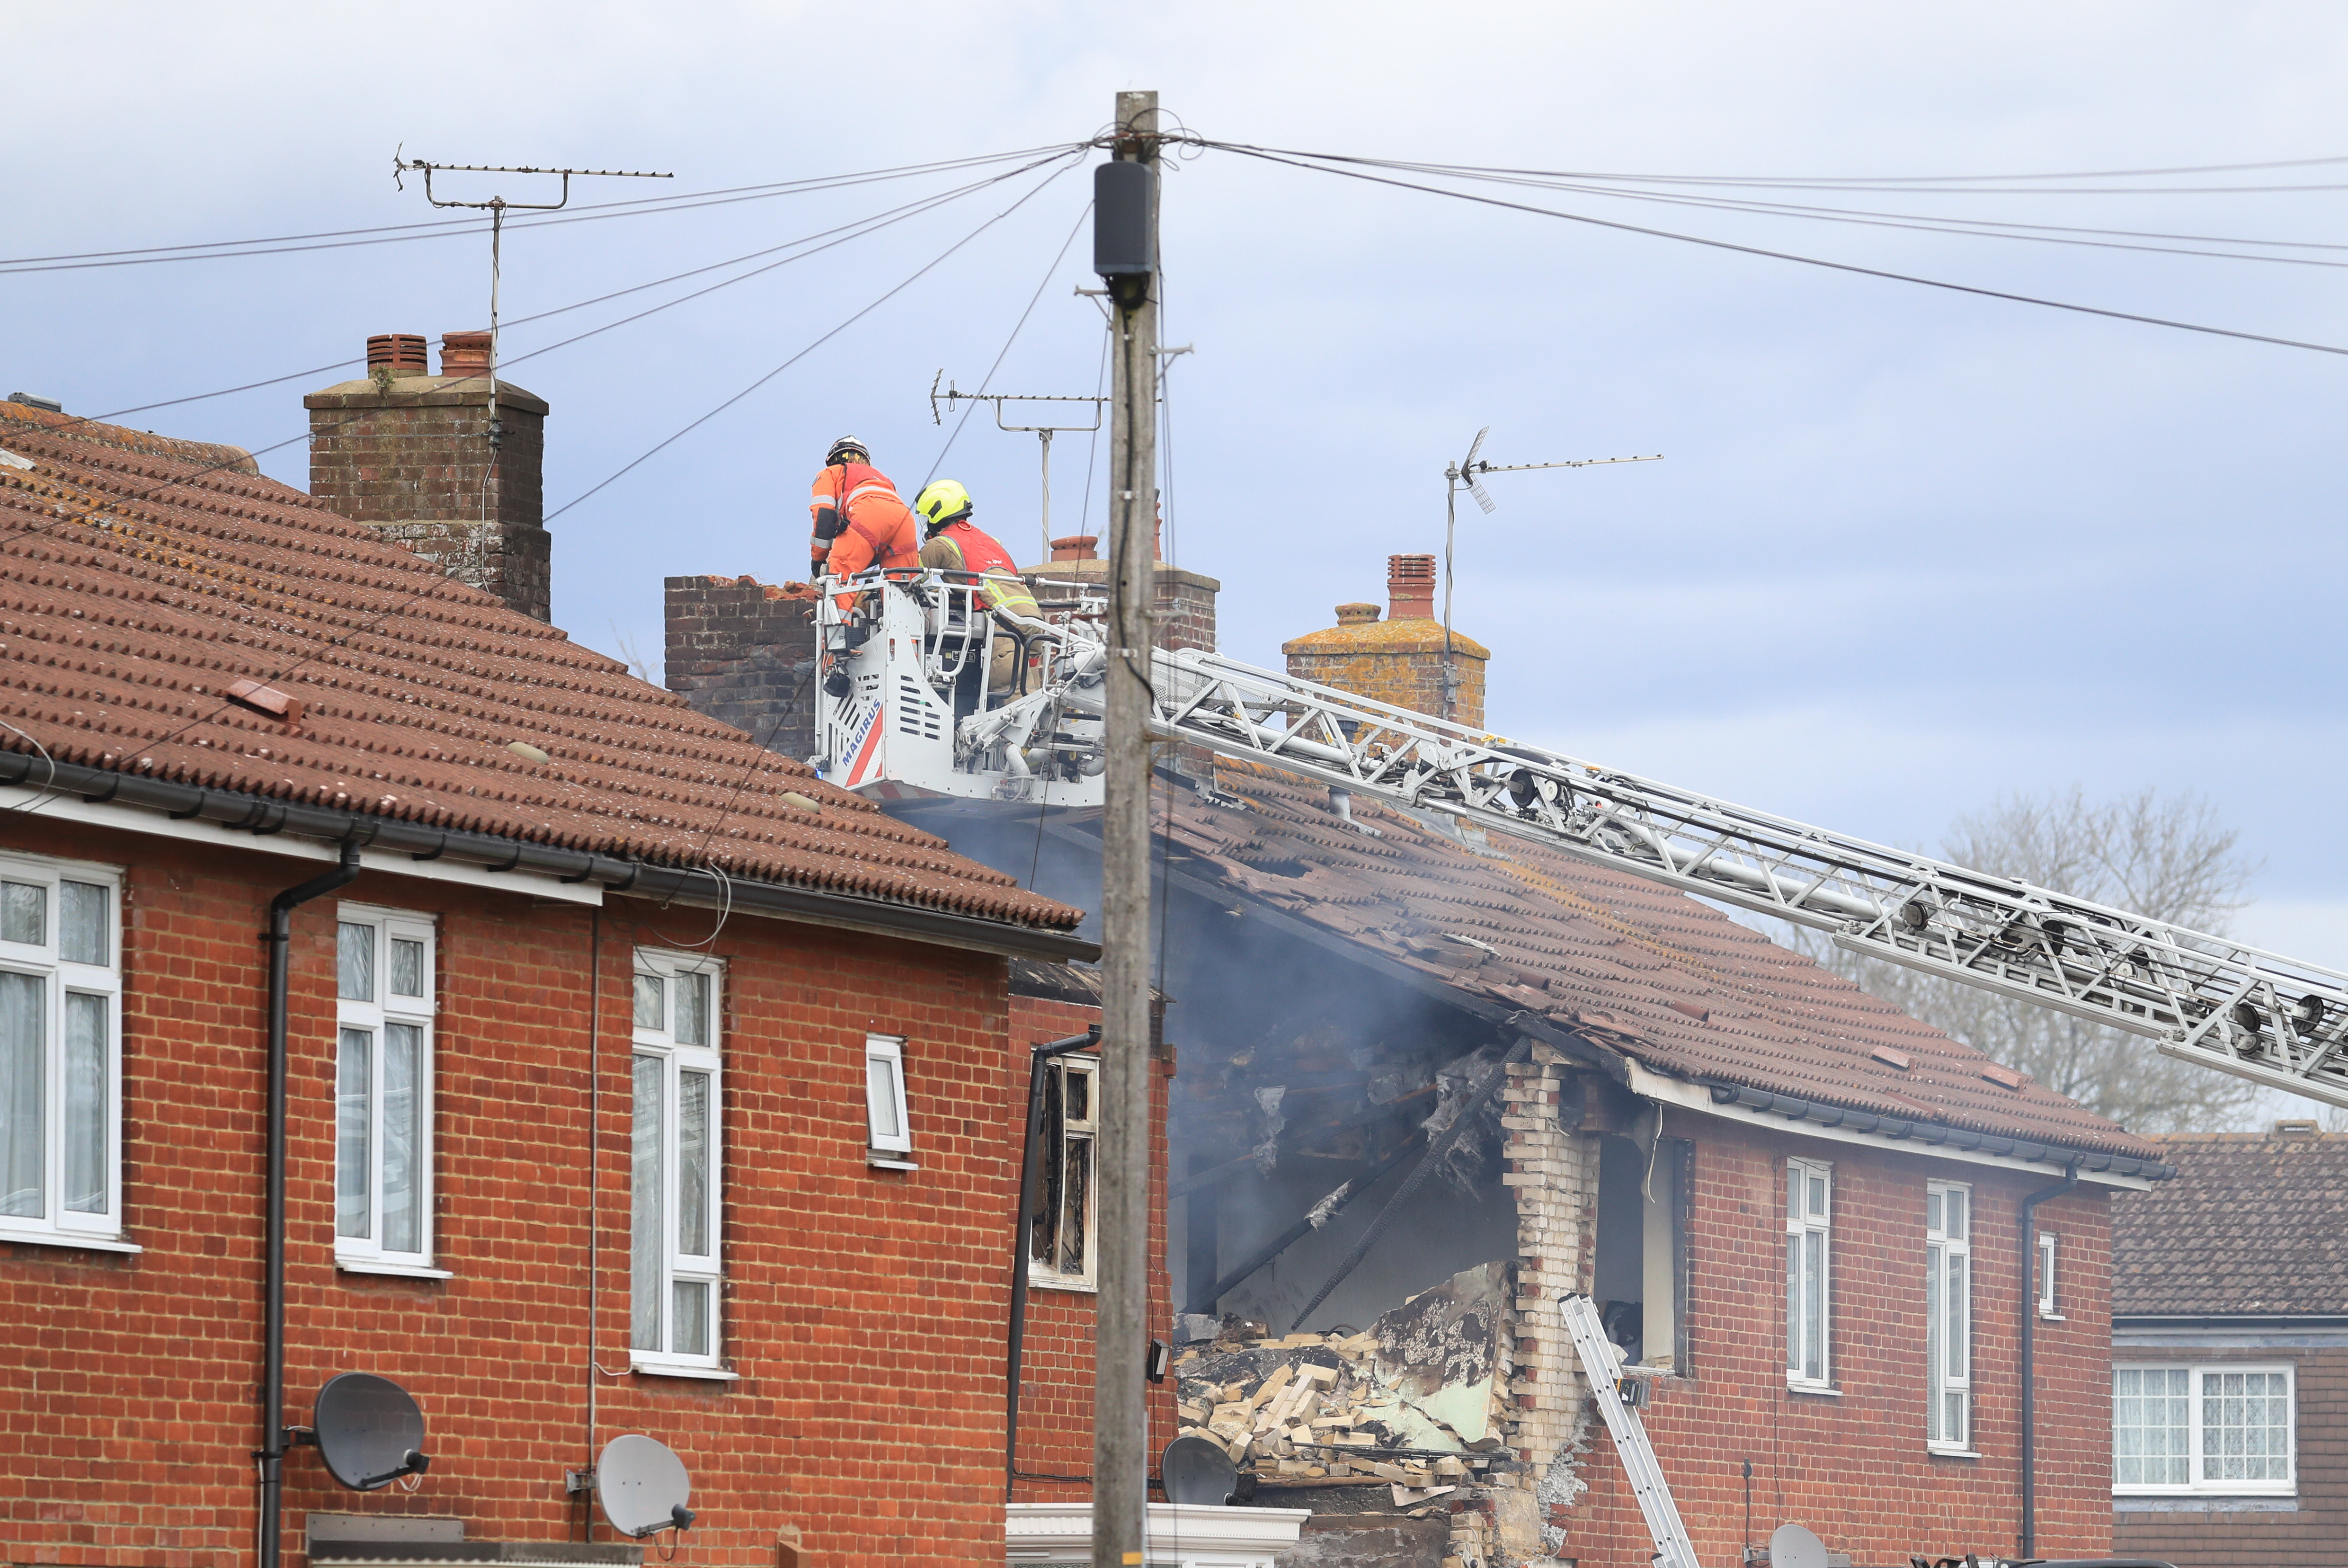 <p>Emergency services work at the scene of a house fire in Mill View in Willesborough, near Ashford, Kent following a reported explosion. Picture date: Tuesday May 4, 2021.</p>